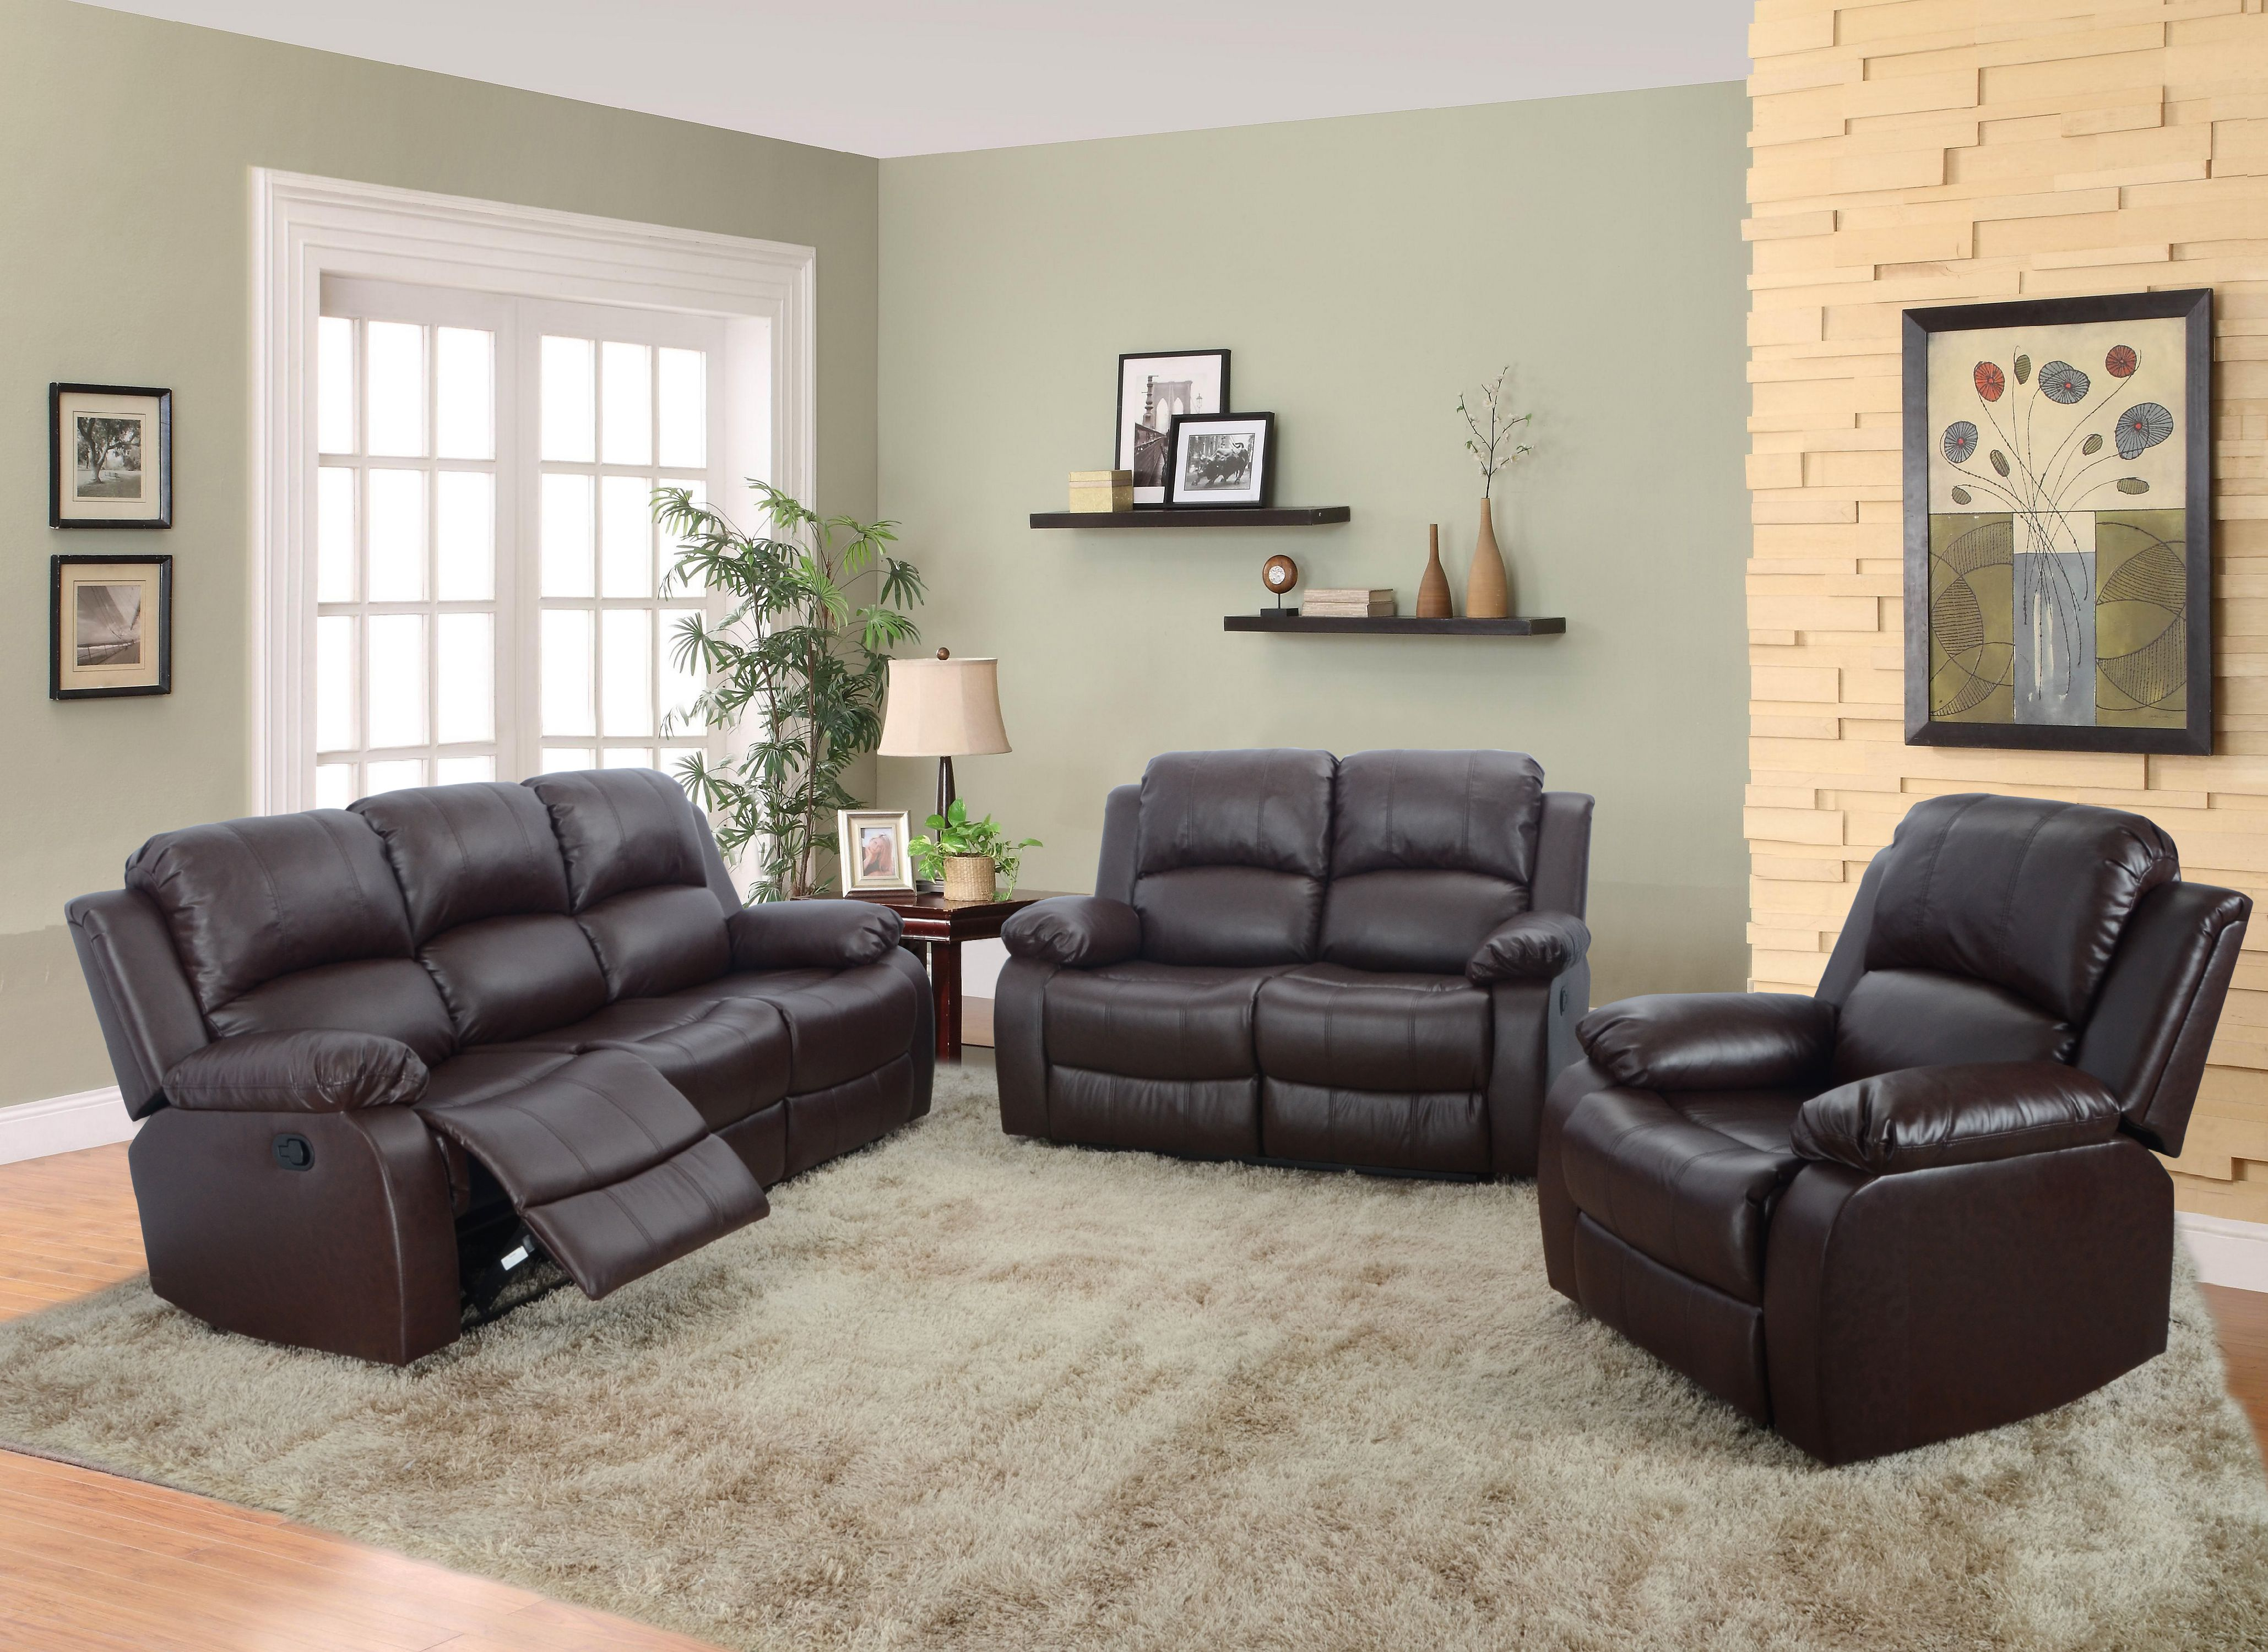 Reclining sectional sofa aycp furniture 3pc living room reclining sectional sofa set sofa loveseat chair bonded leather brown color more colors and